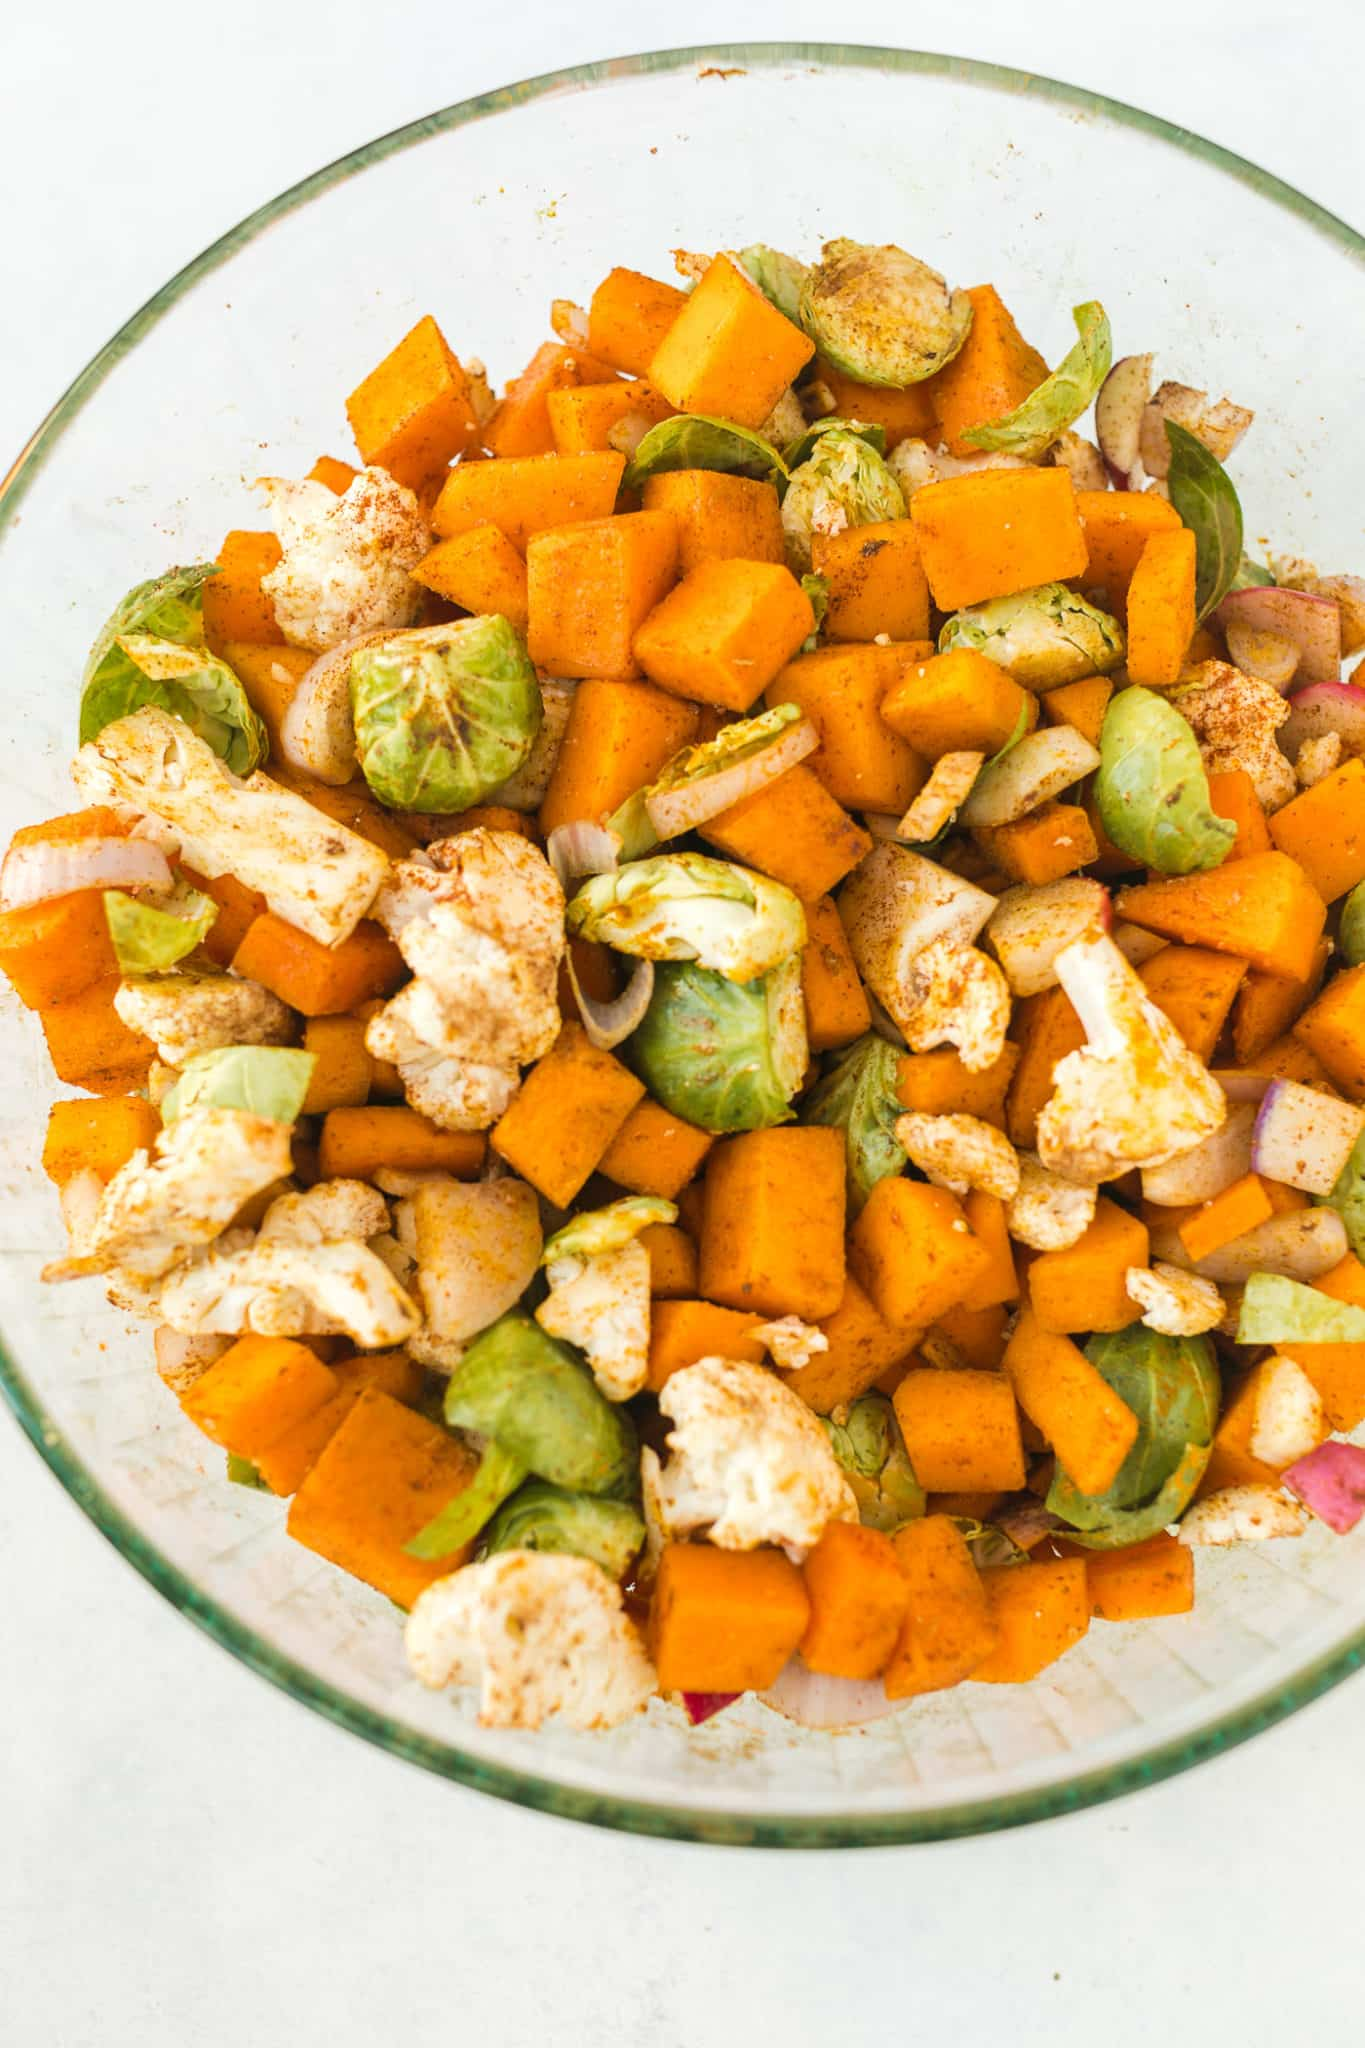 chopped vegetables in a large mixing bowl tossed with oil and spice blend